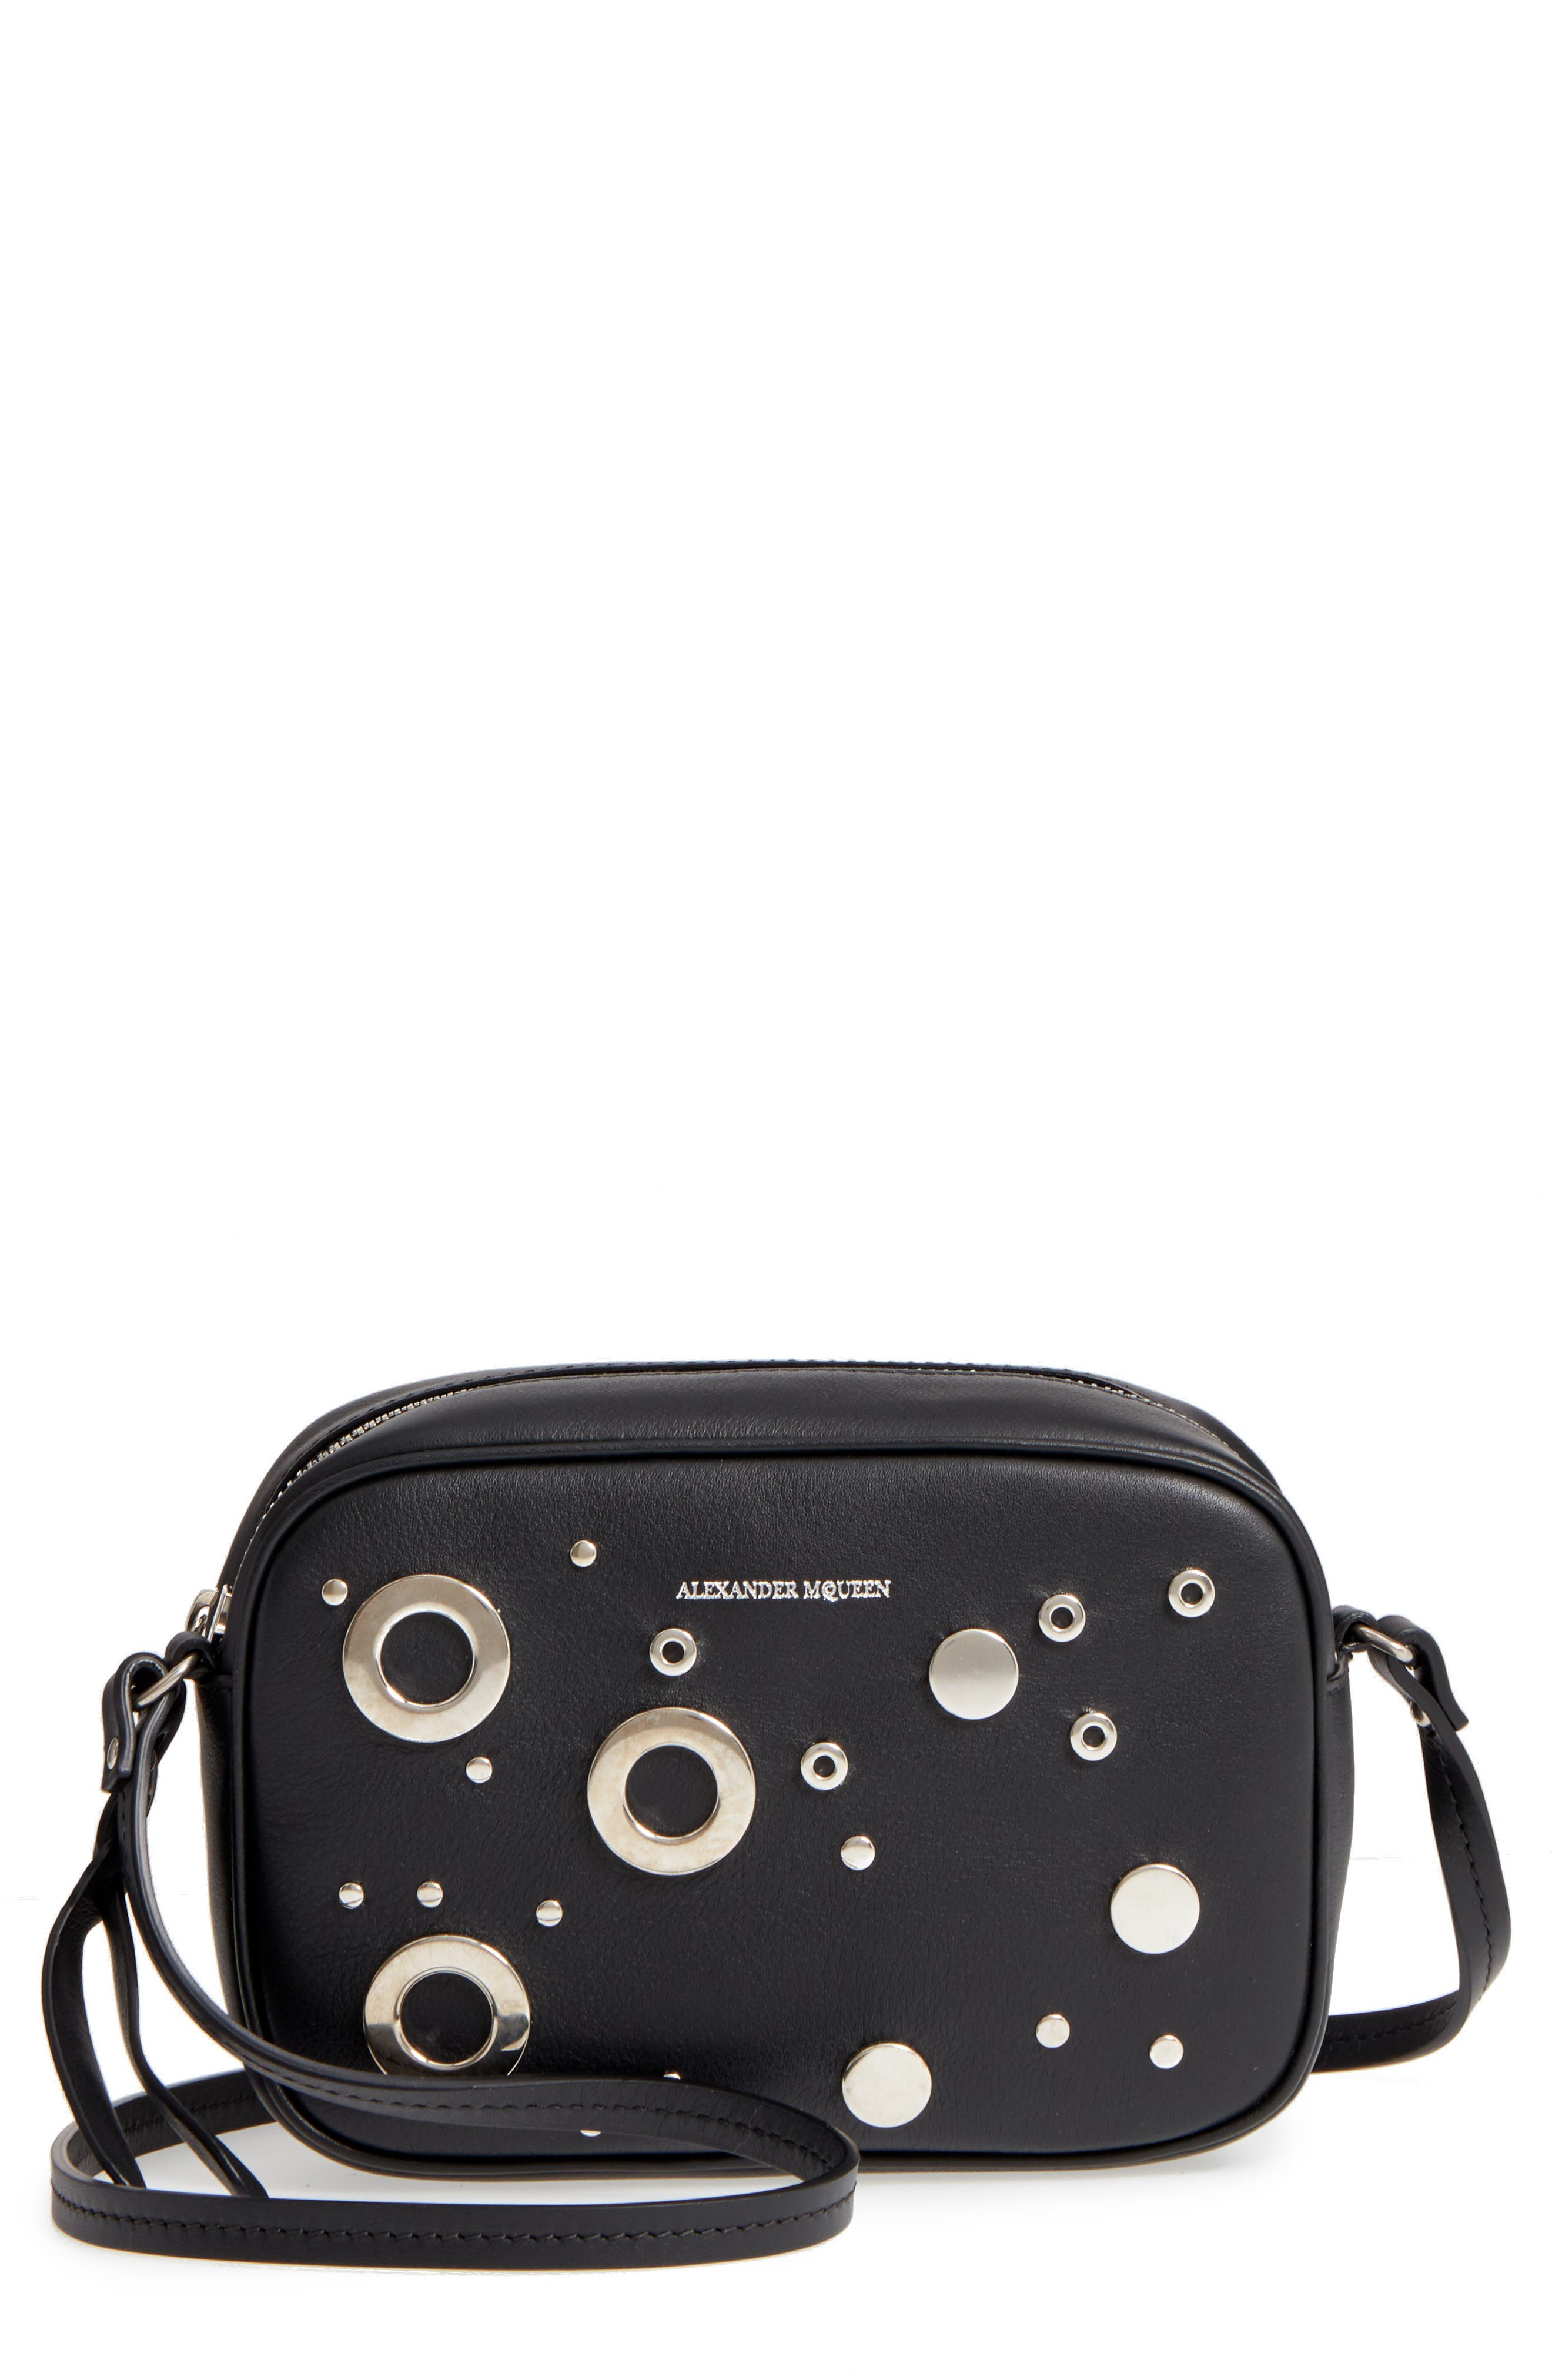 Alexander McQueen Small Leather Camera Bag